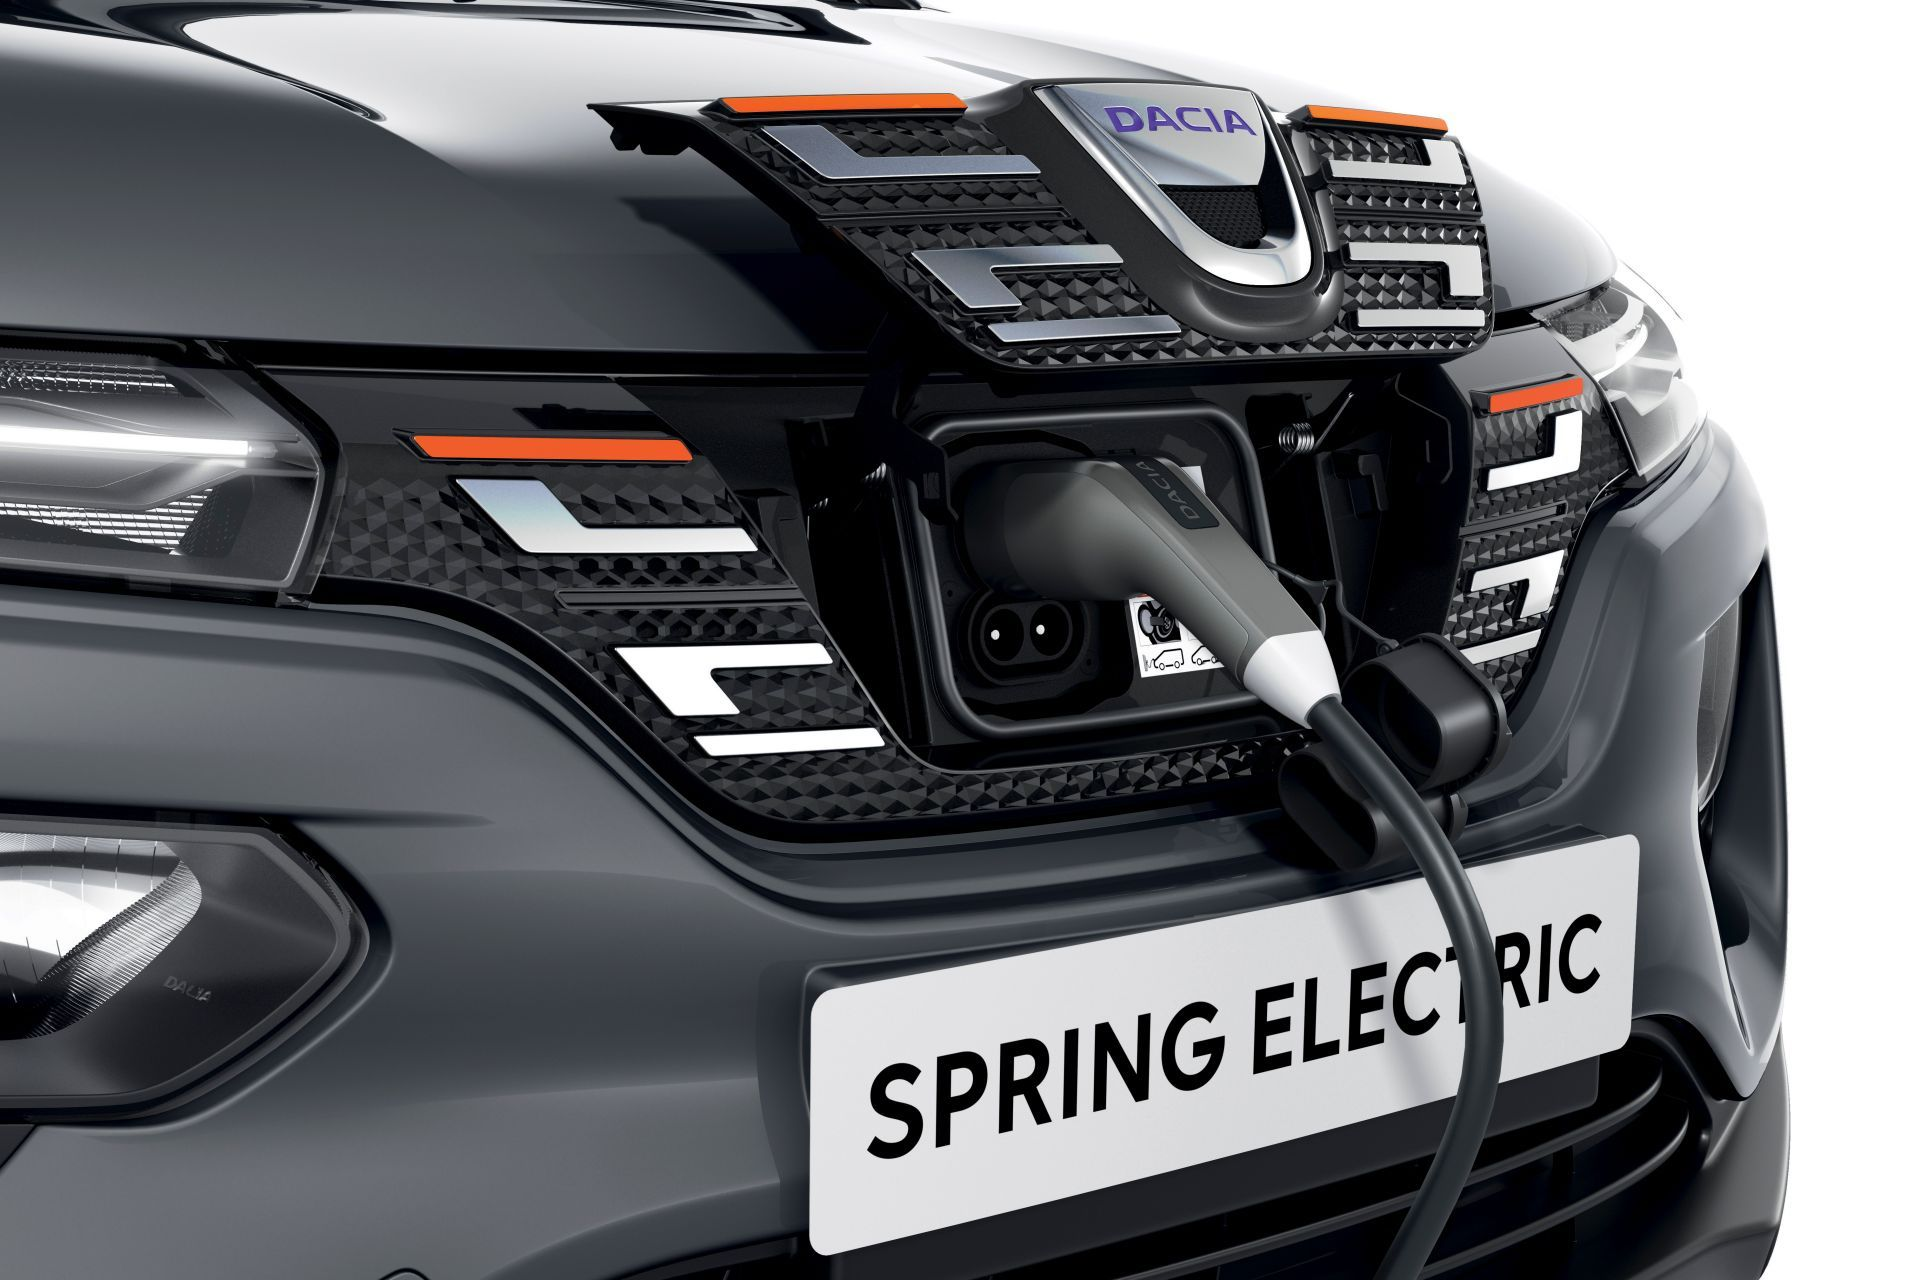 Dacia-Spring-Electric-17